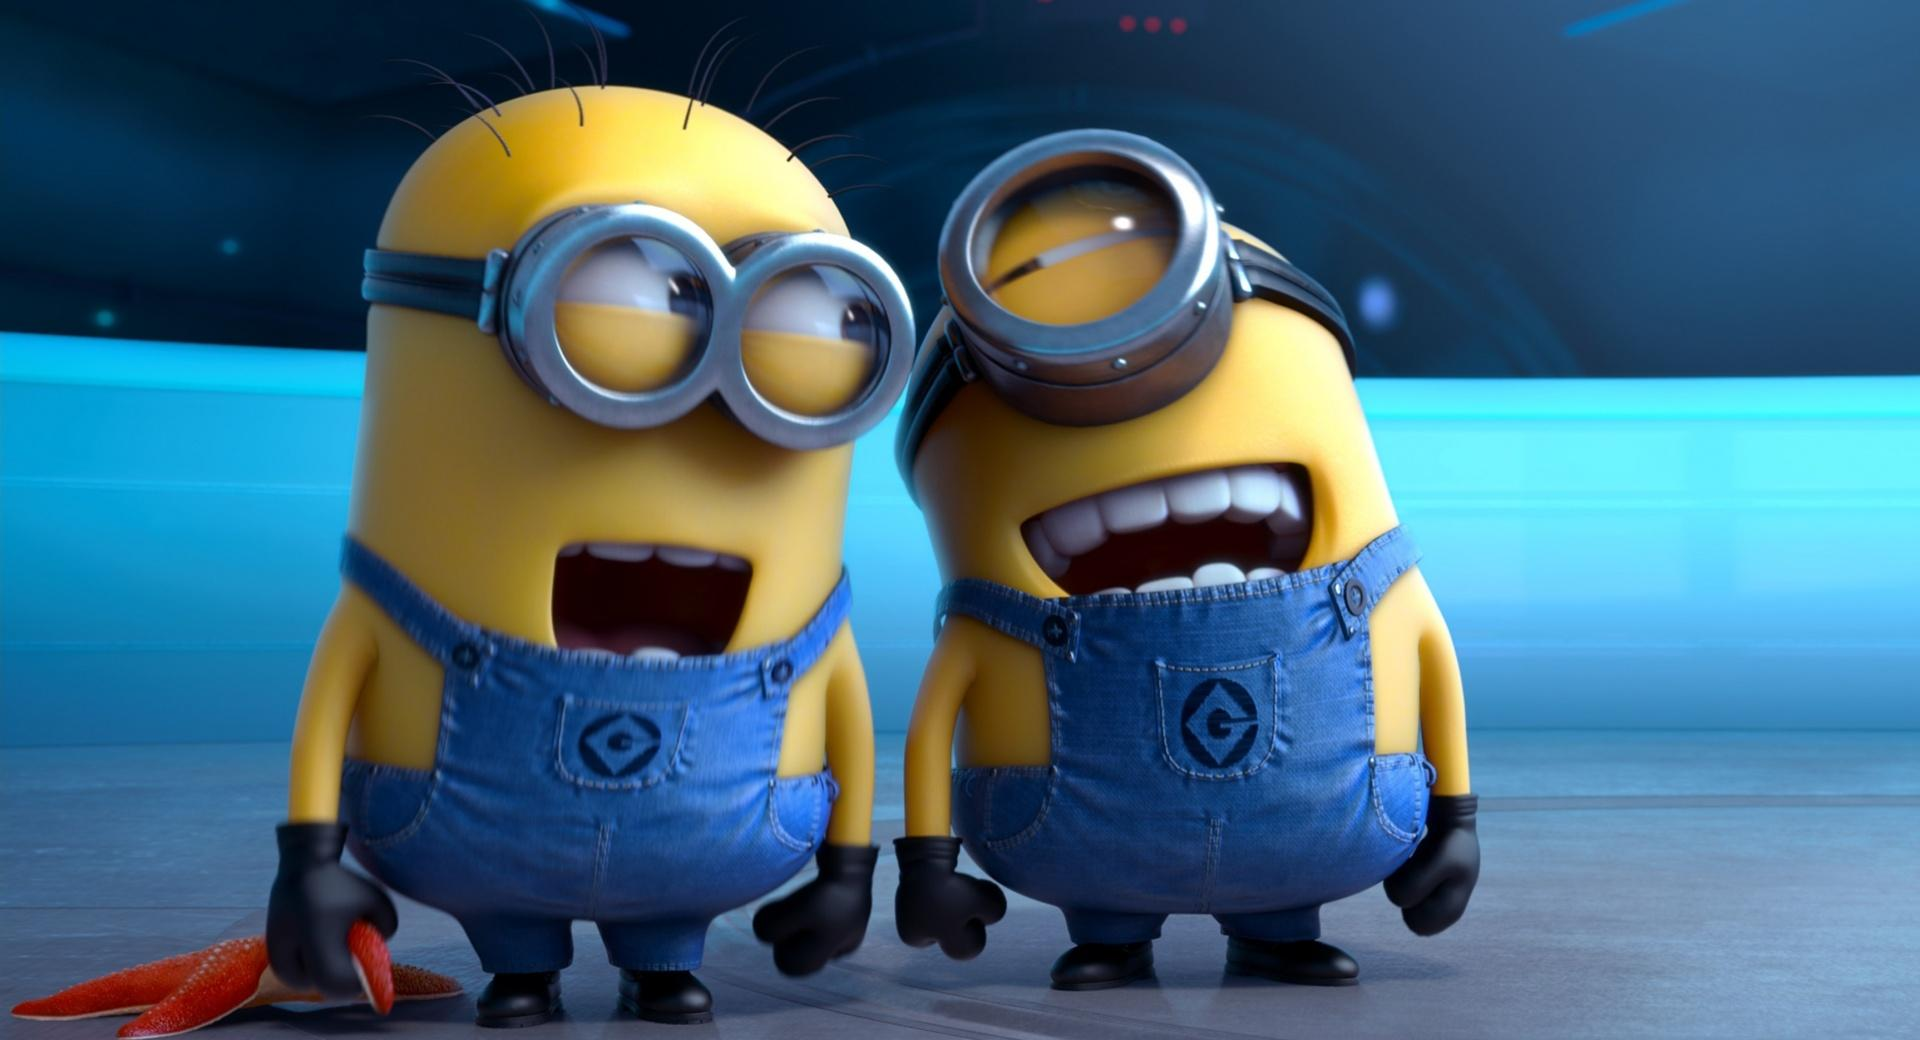 Despicable Me 2 Laughing Minions at 1280 x 960 size wallpapers HD quality